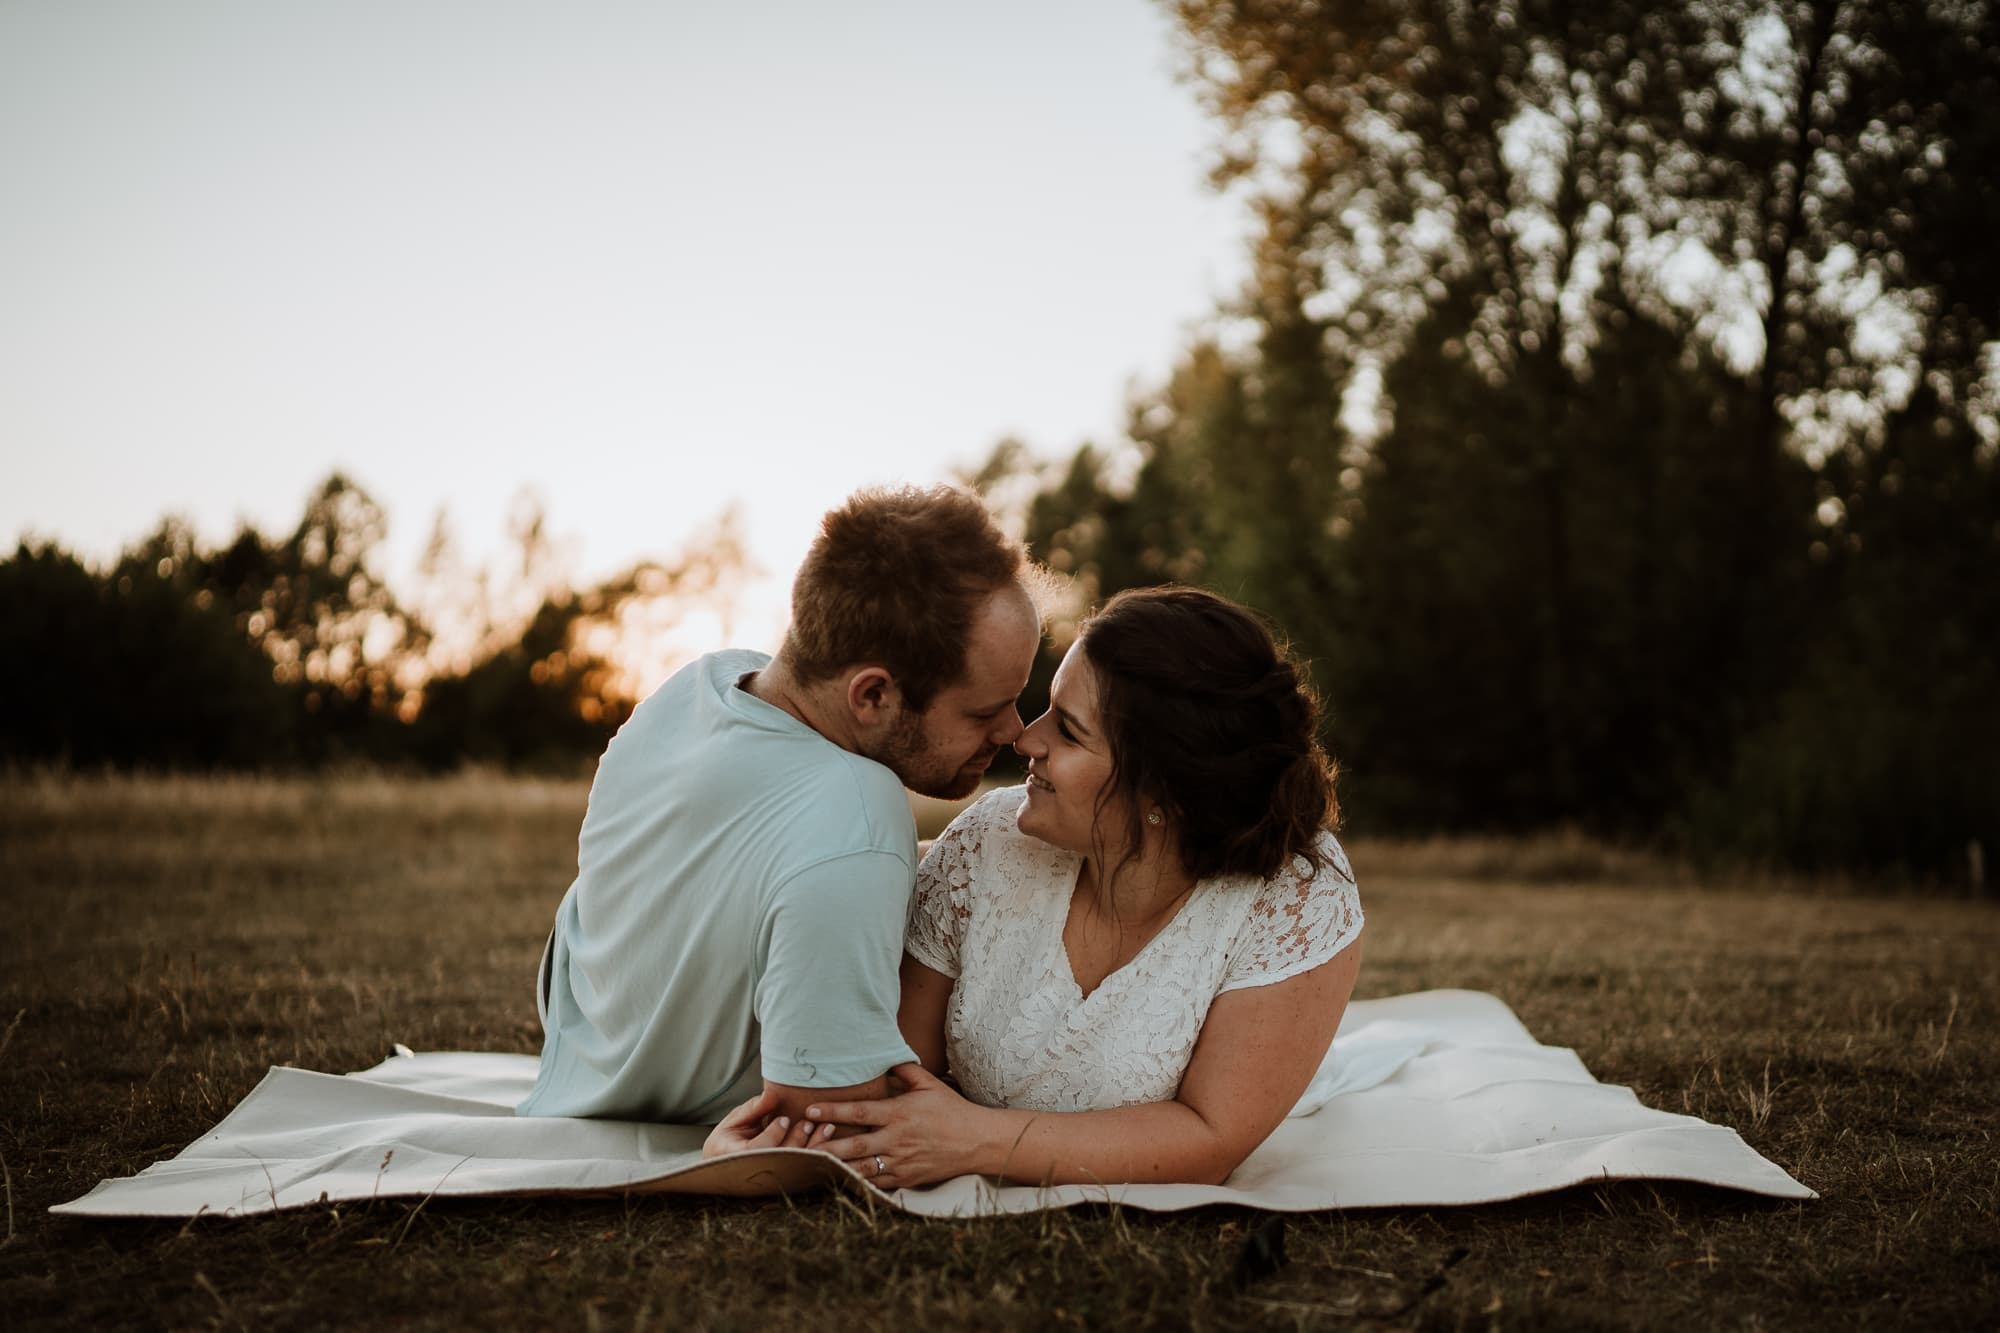 Couple kissing laying on blanket at sunset